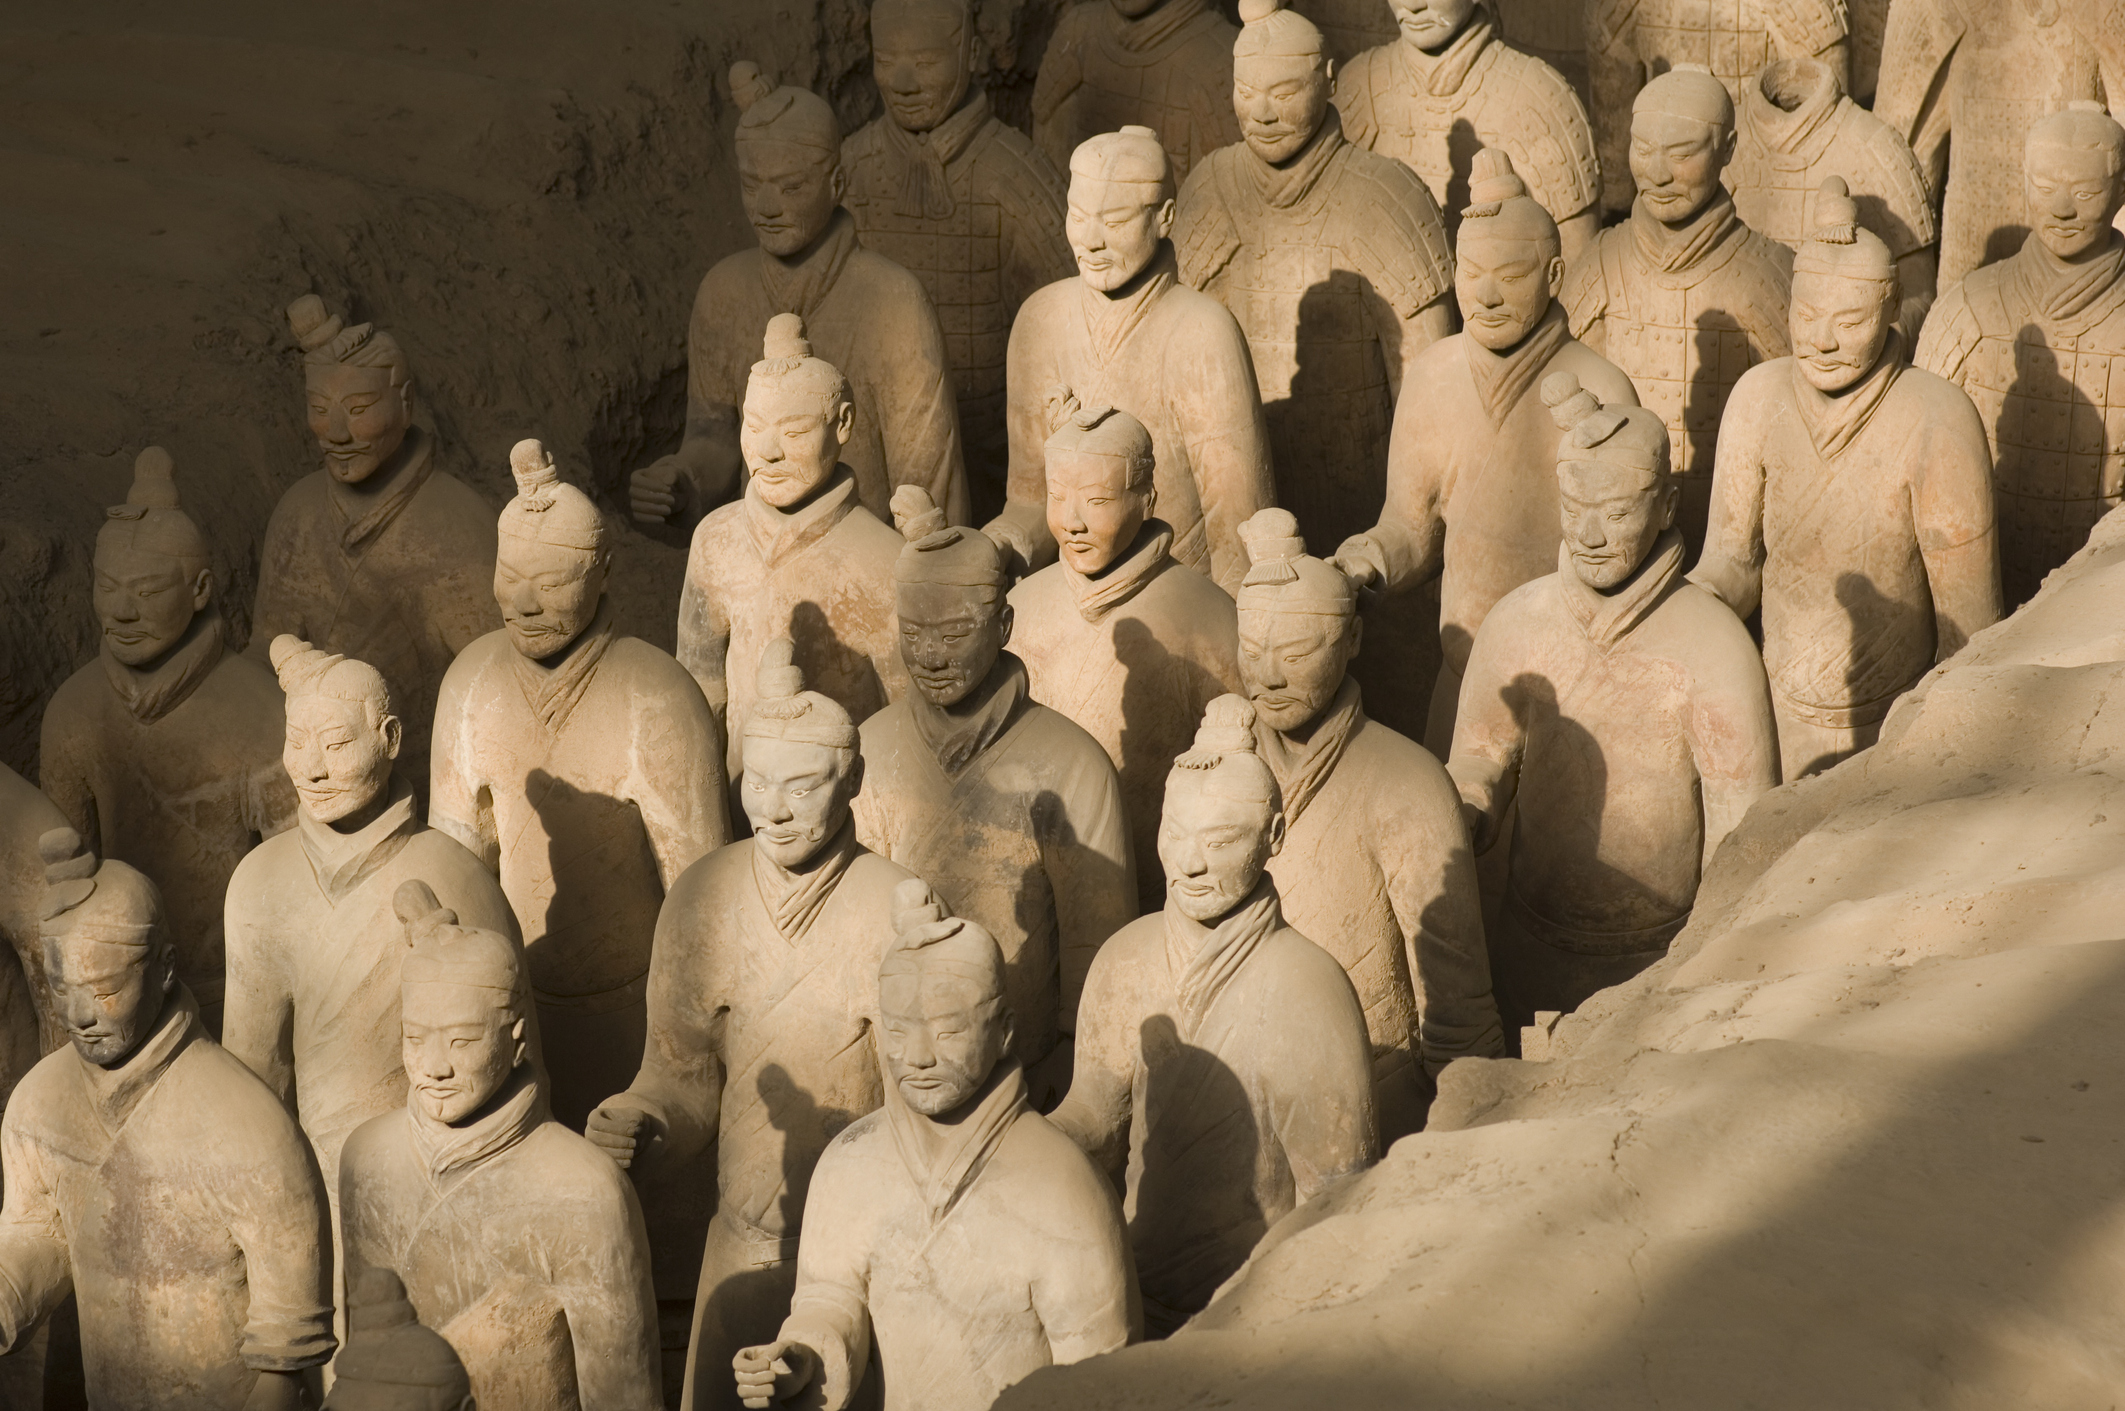 Terracotta soldiers in the Mausoleum of Emperor Qin Shi Huang, Xi'an, Shaanxi Province, China.